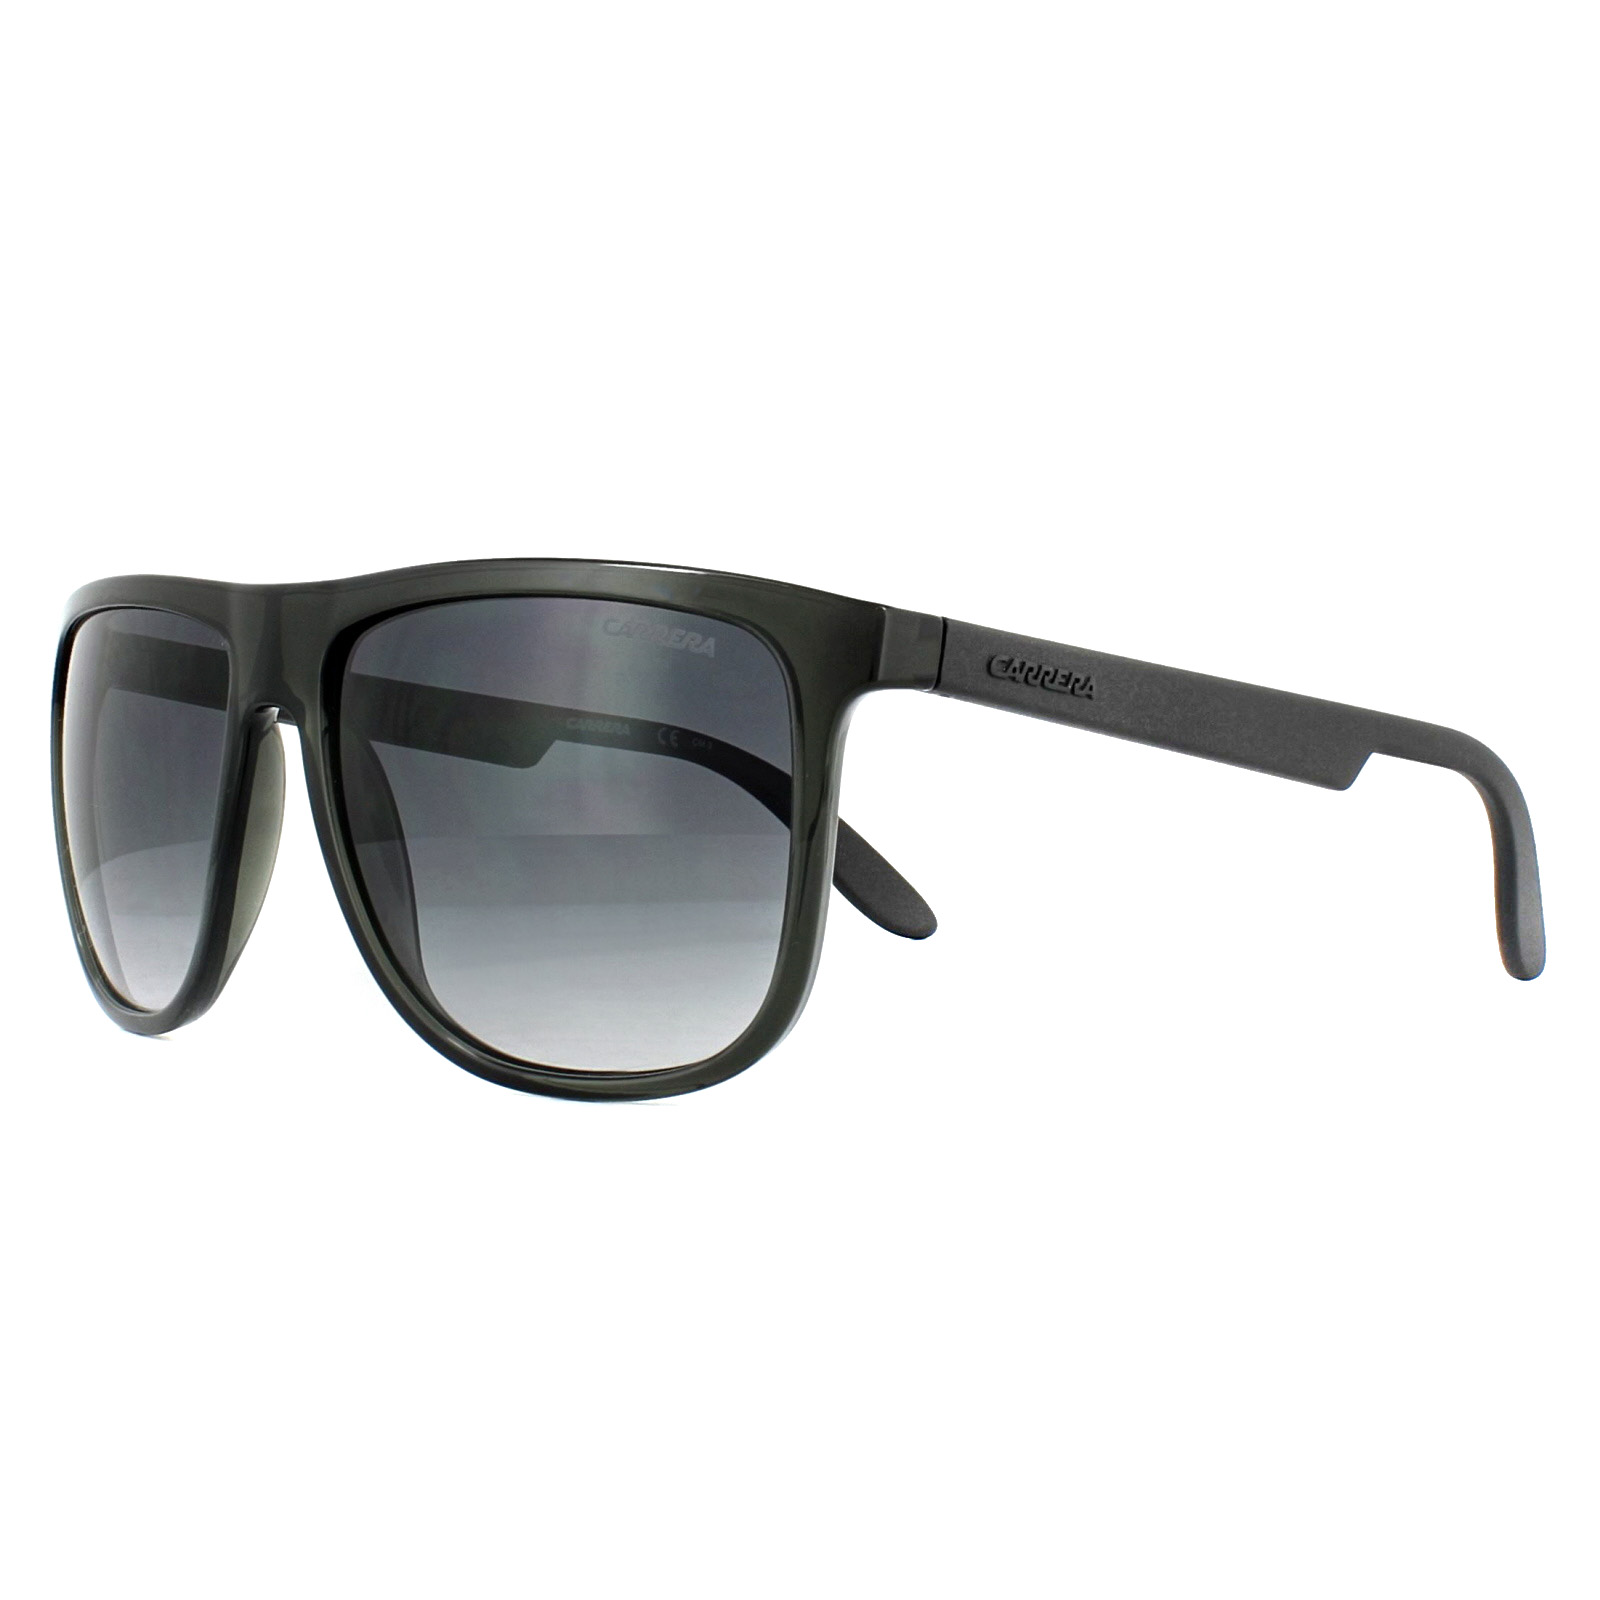 46e601517e Sentinel Carrera Sunglasses Carrera 5003 DDL/JJ Dark Grey Grey Gradient